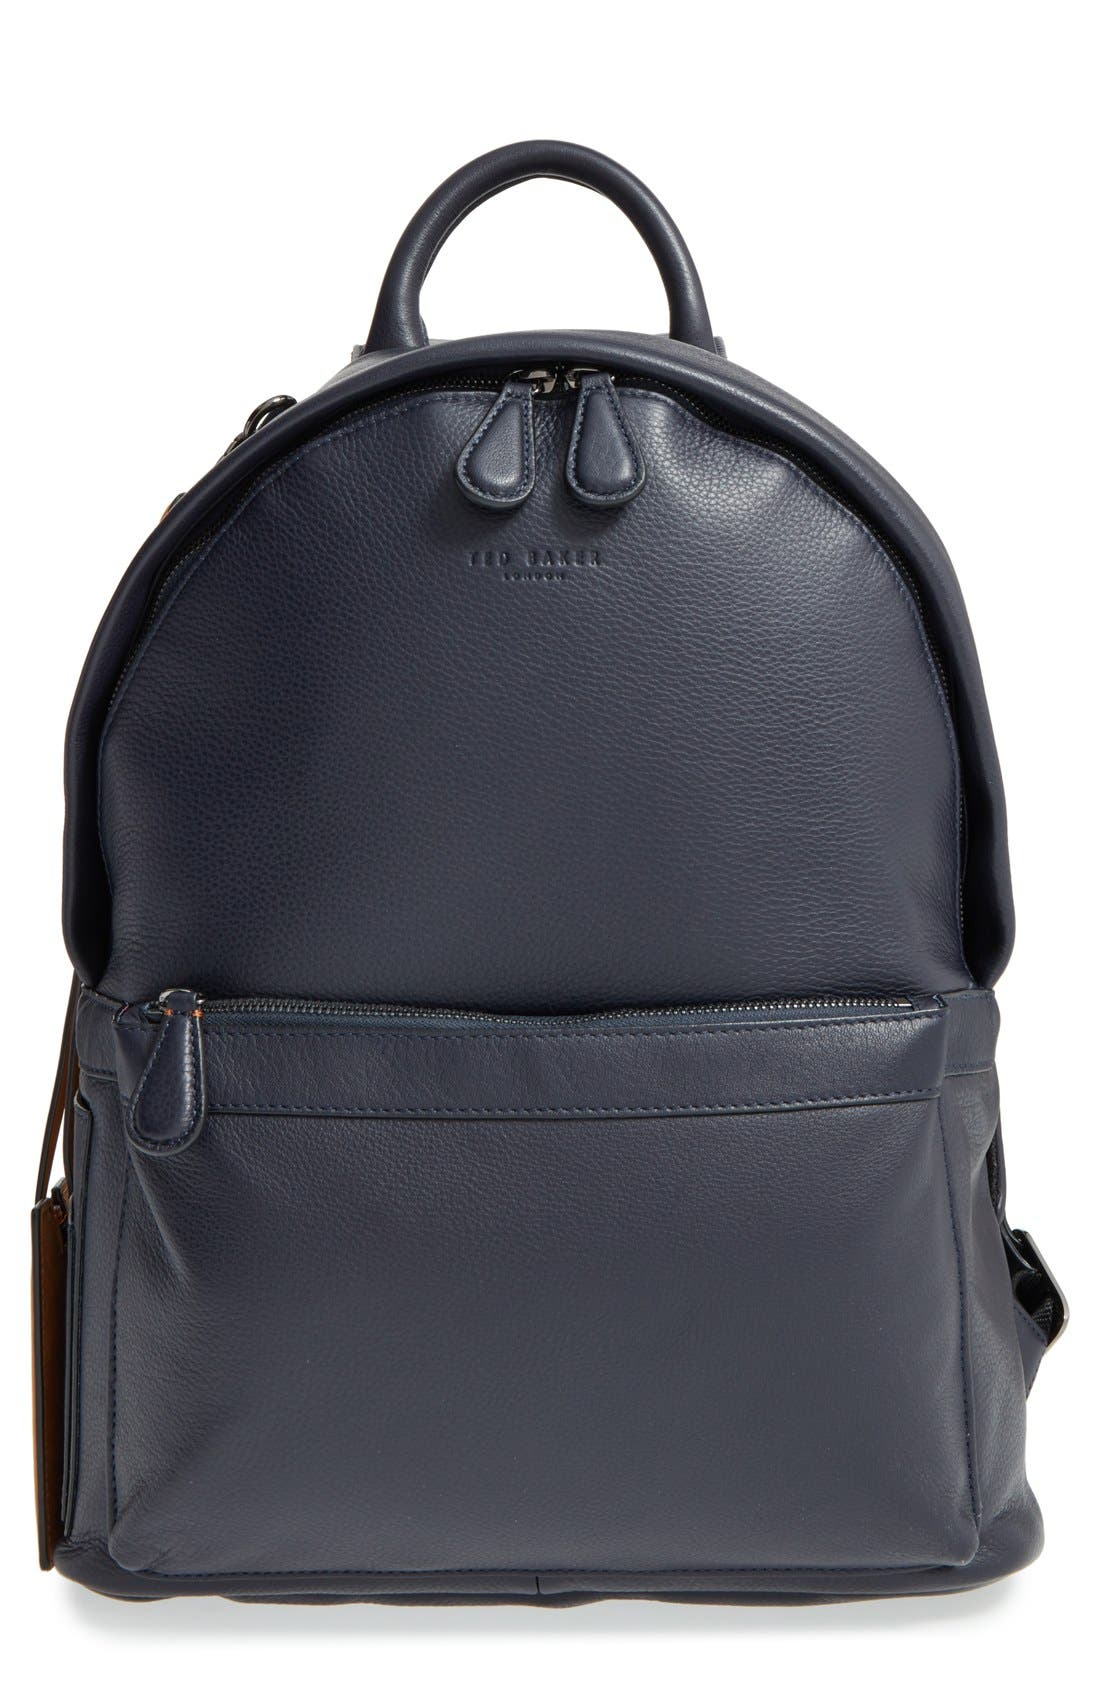 TED BAKER LONDON, 'Dollar' Leather Backpack, Main thumbnail 1, color, 410